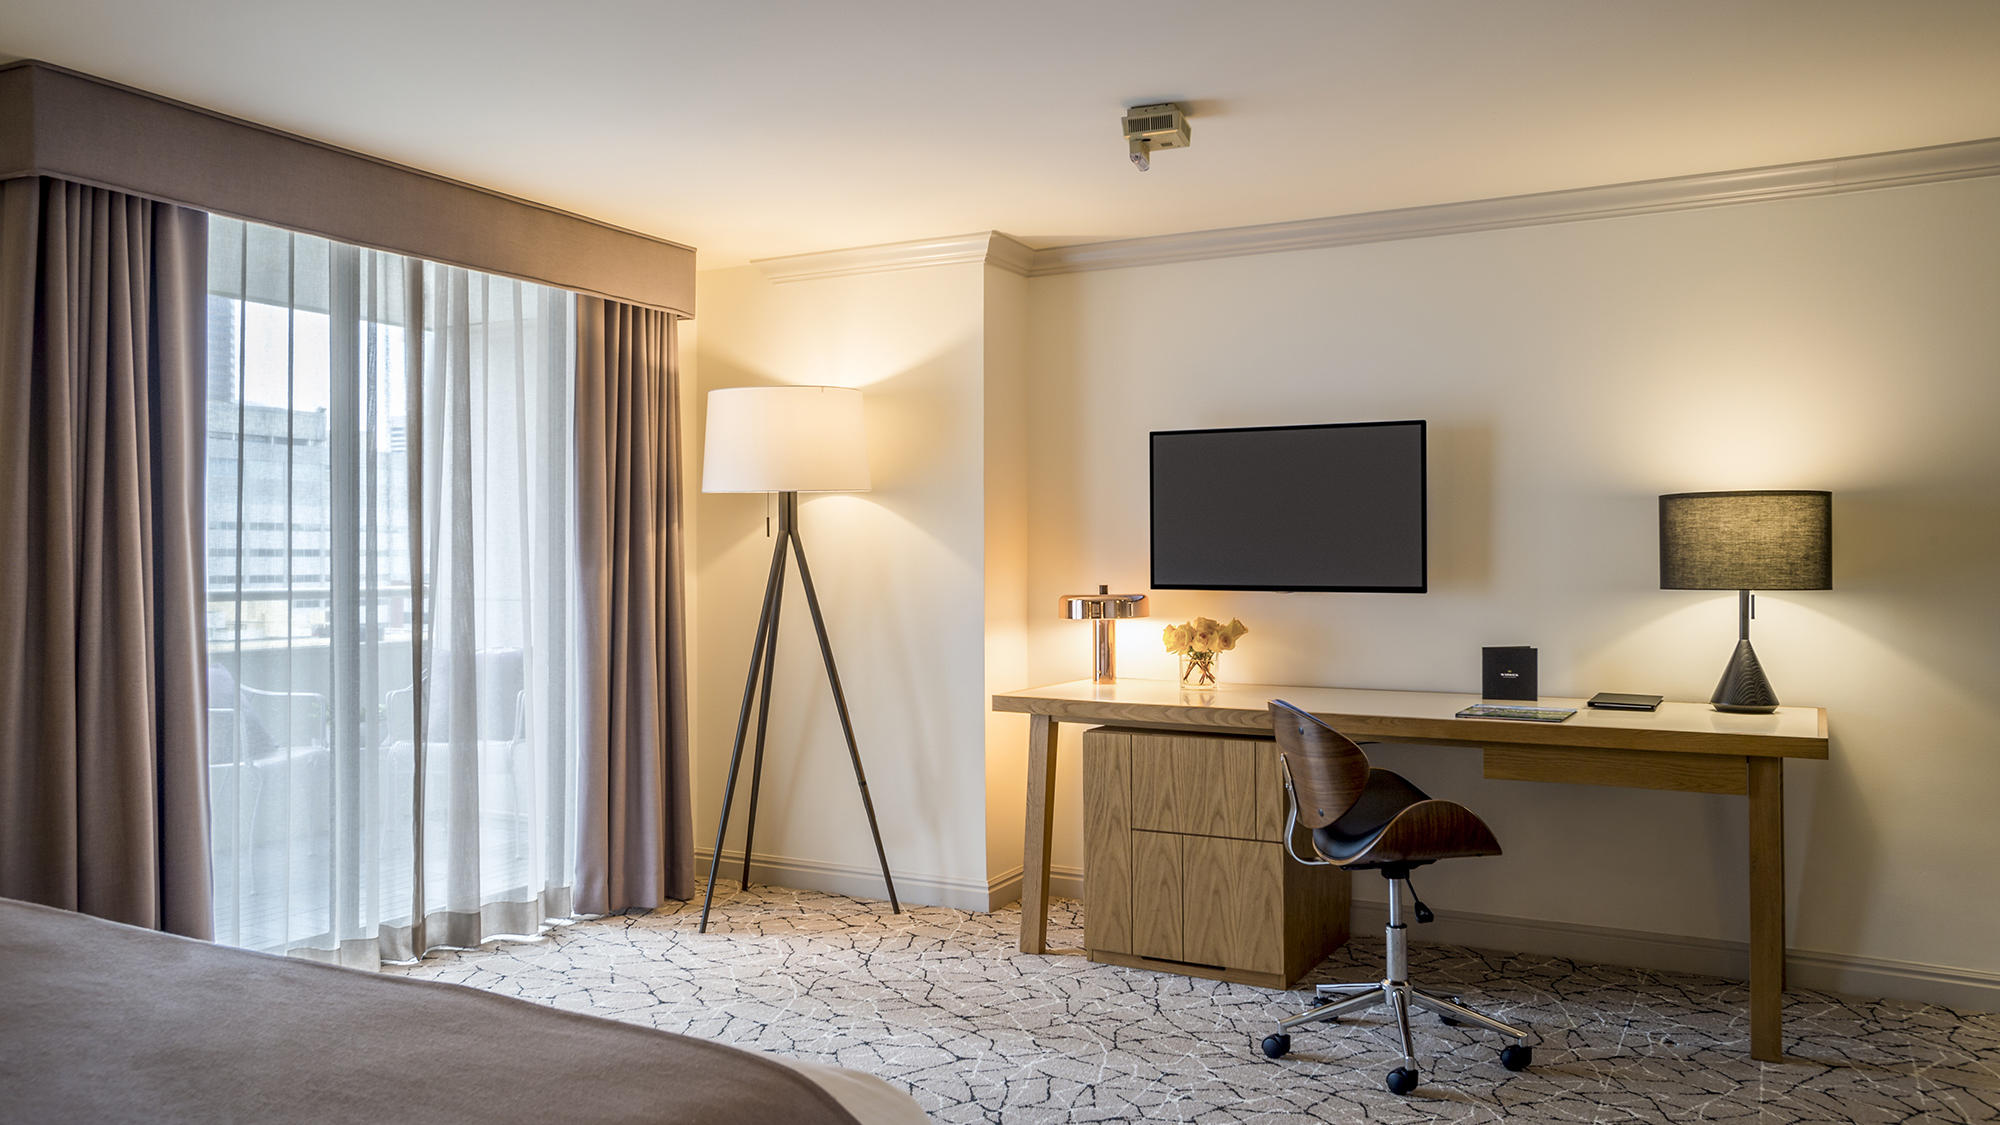 Accessible Deluxe Rooms offer details